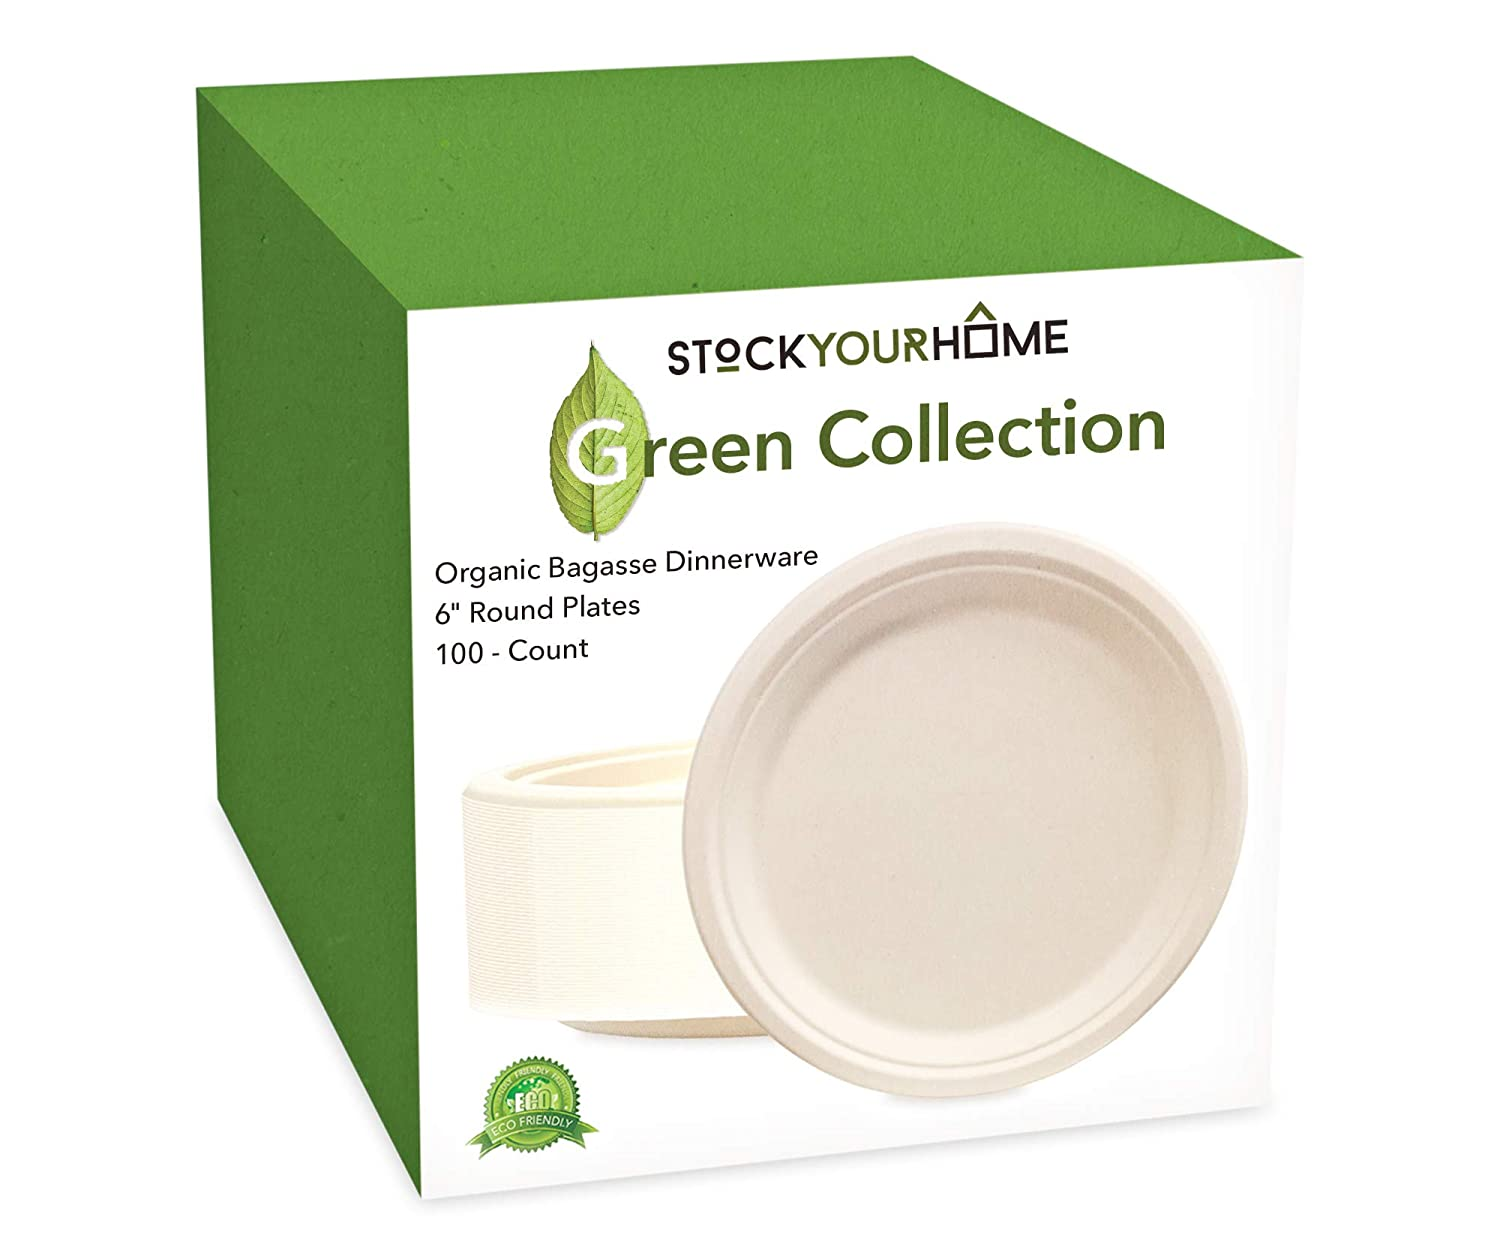 6-Inch Compostable Luncheon Plates- Eco Friendly Natural Bagasse Sugarcane Dinnerware Set, 100-Count